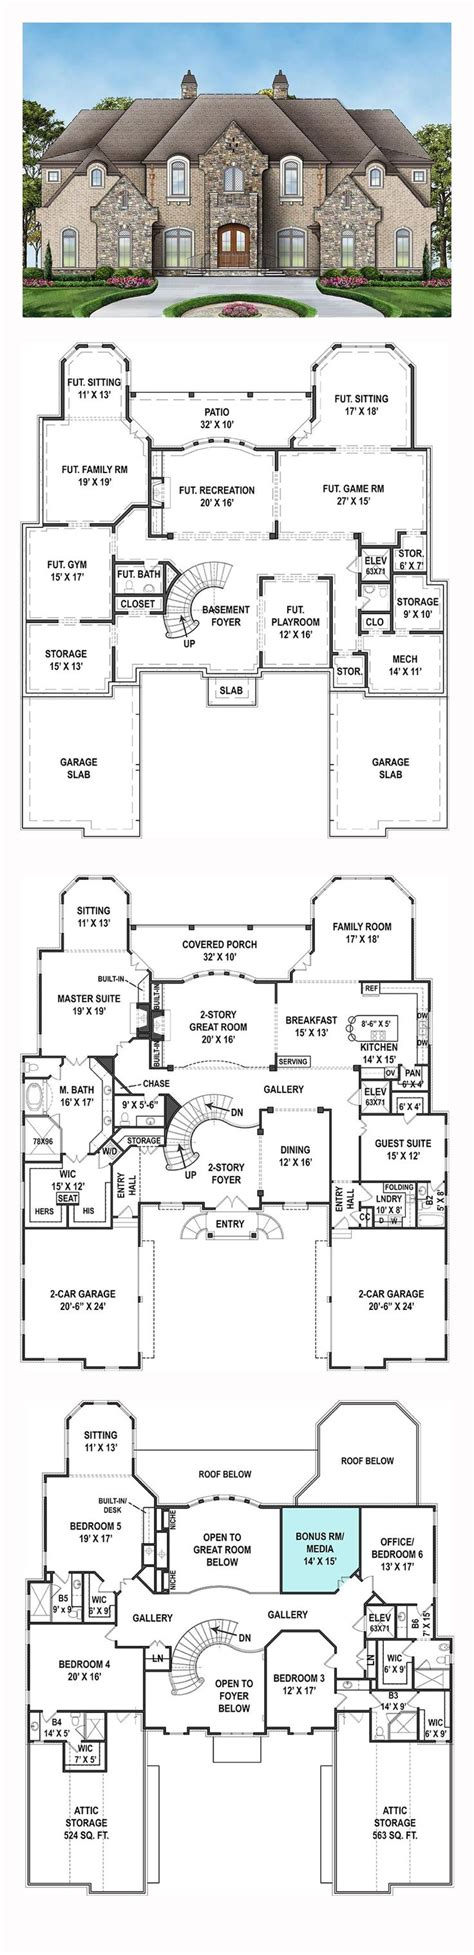 new floor plans best 25 family house plans ideas on sims 3